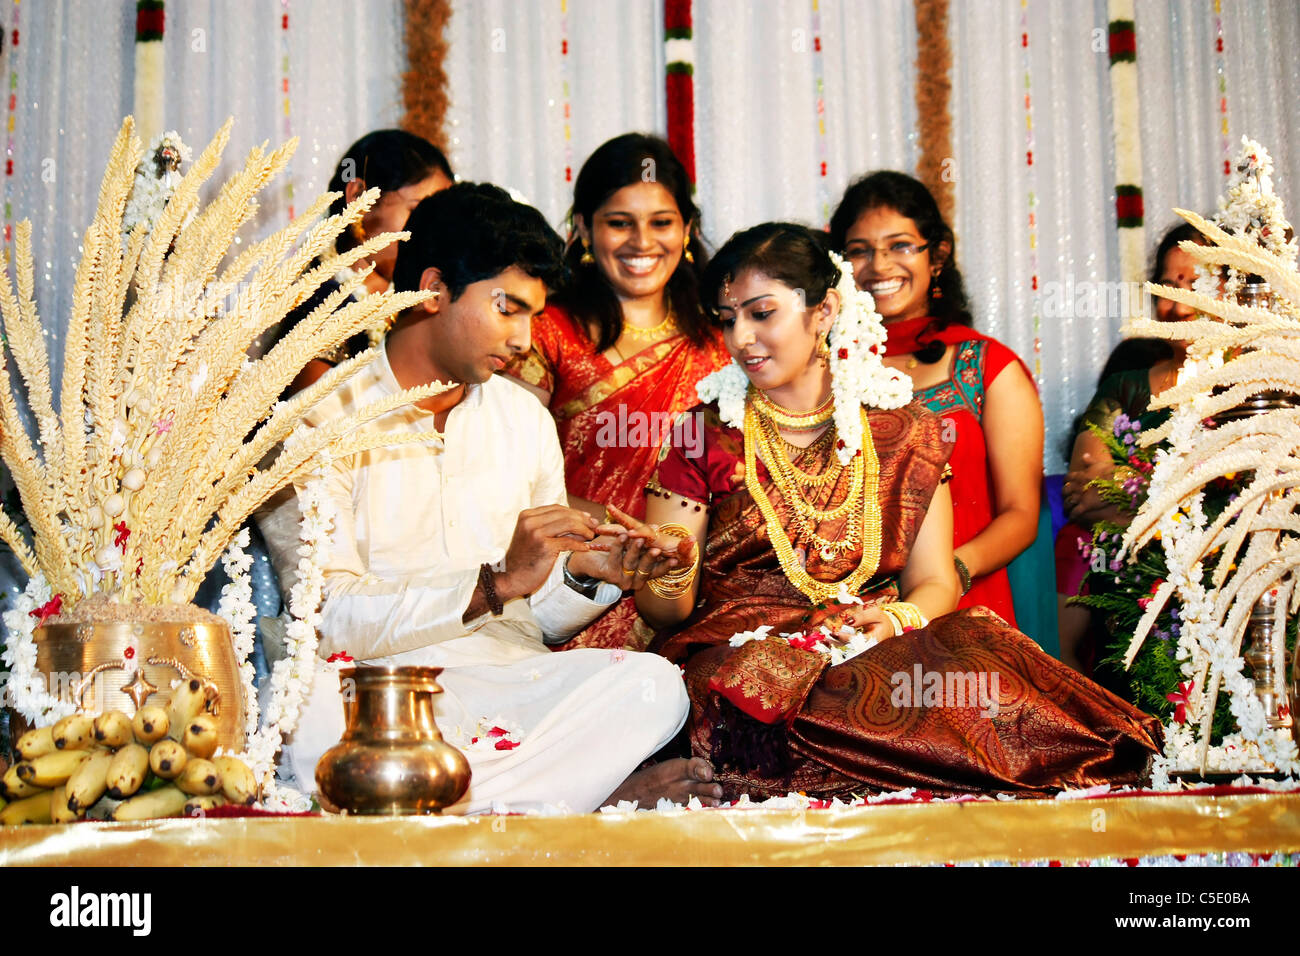 Indian Marriage Stock Photos Indian Marriage Stock Images Alamy